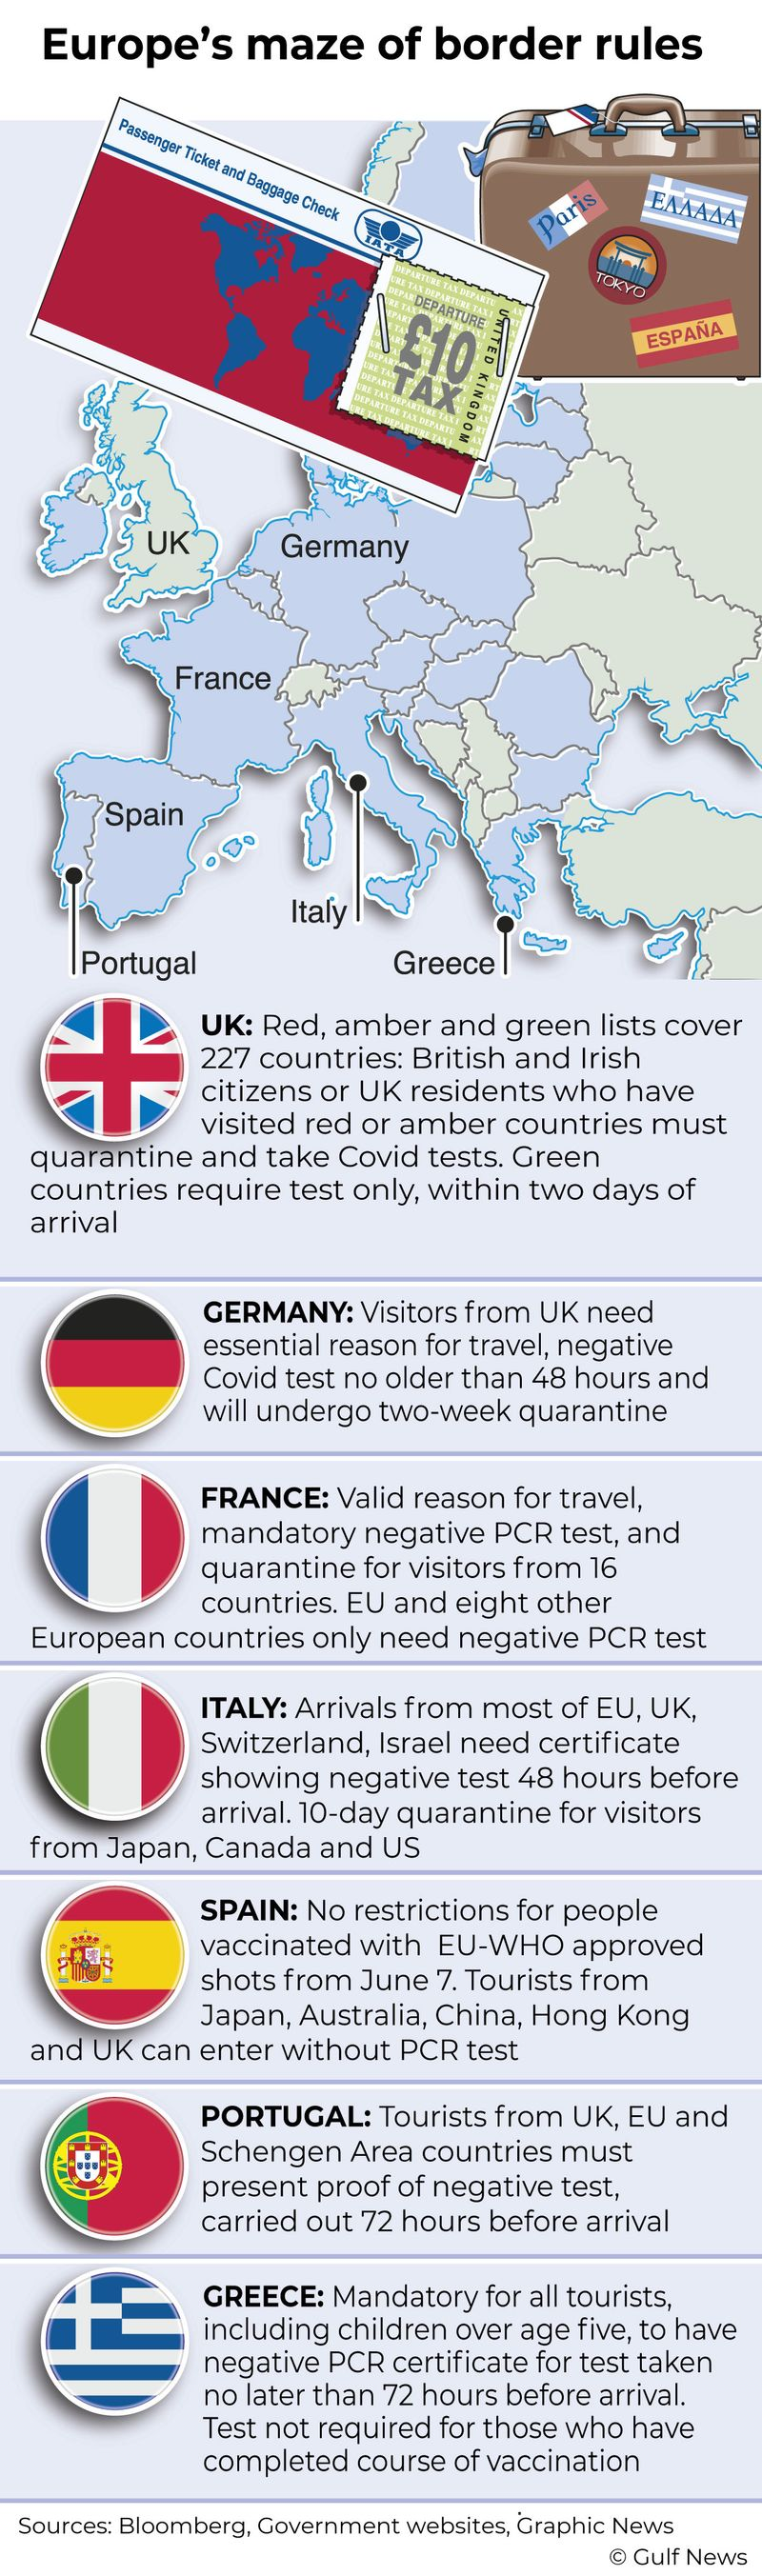 Infographic: Europe's maze of border rules